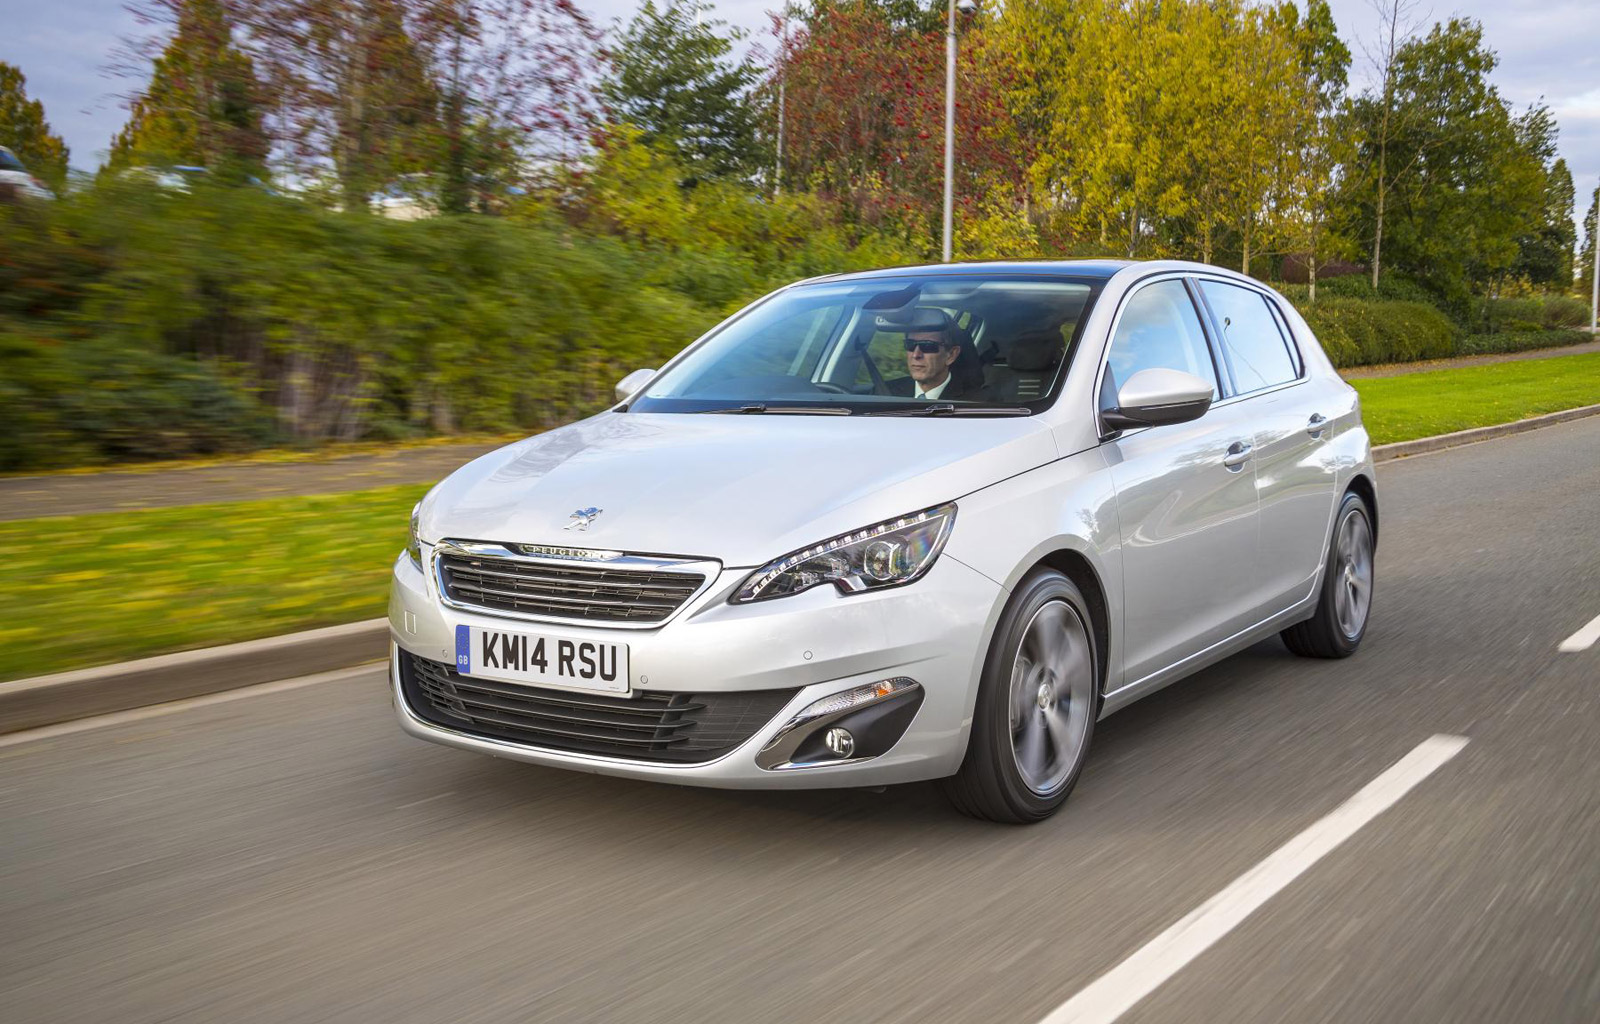 peugeot 308 named 2014 european car of the year. Black Bedroom Furniture Sets. Home Design Ideas